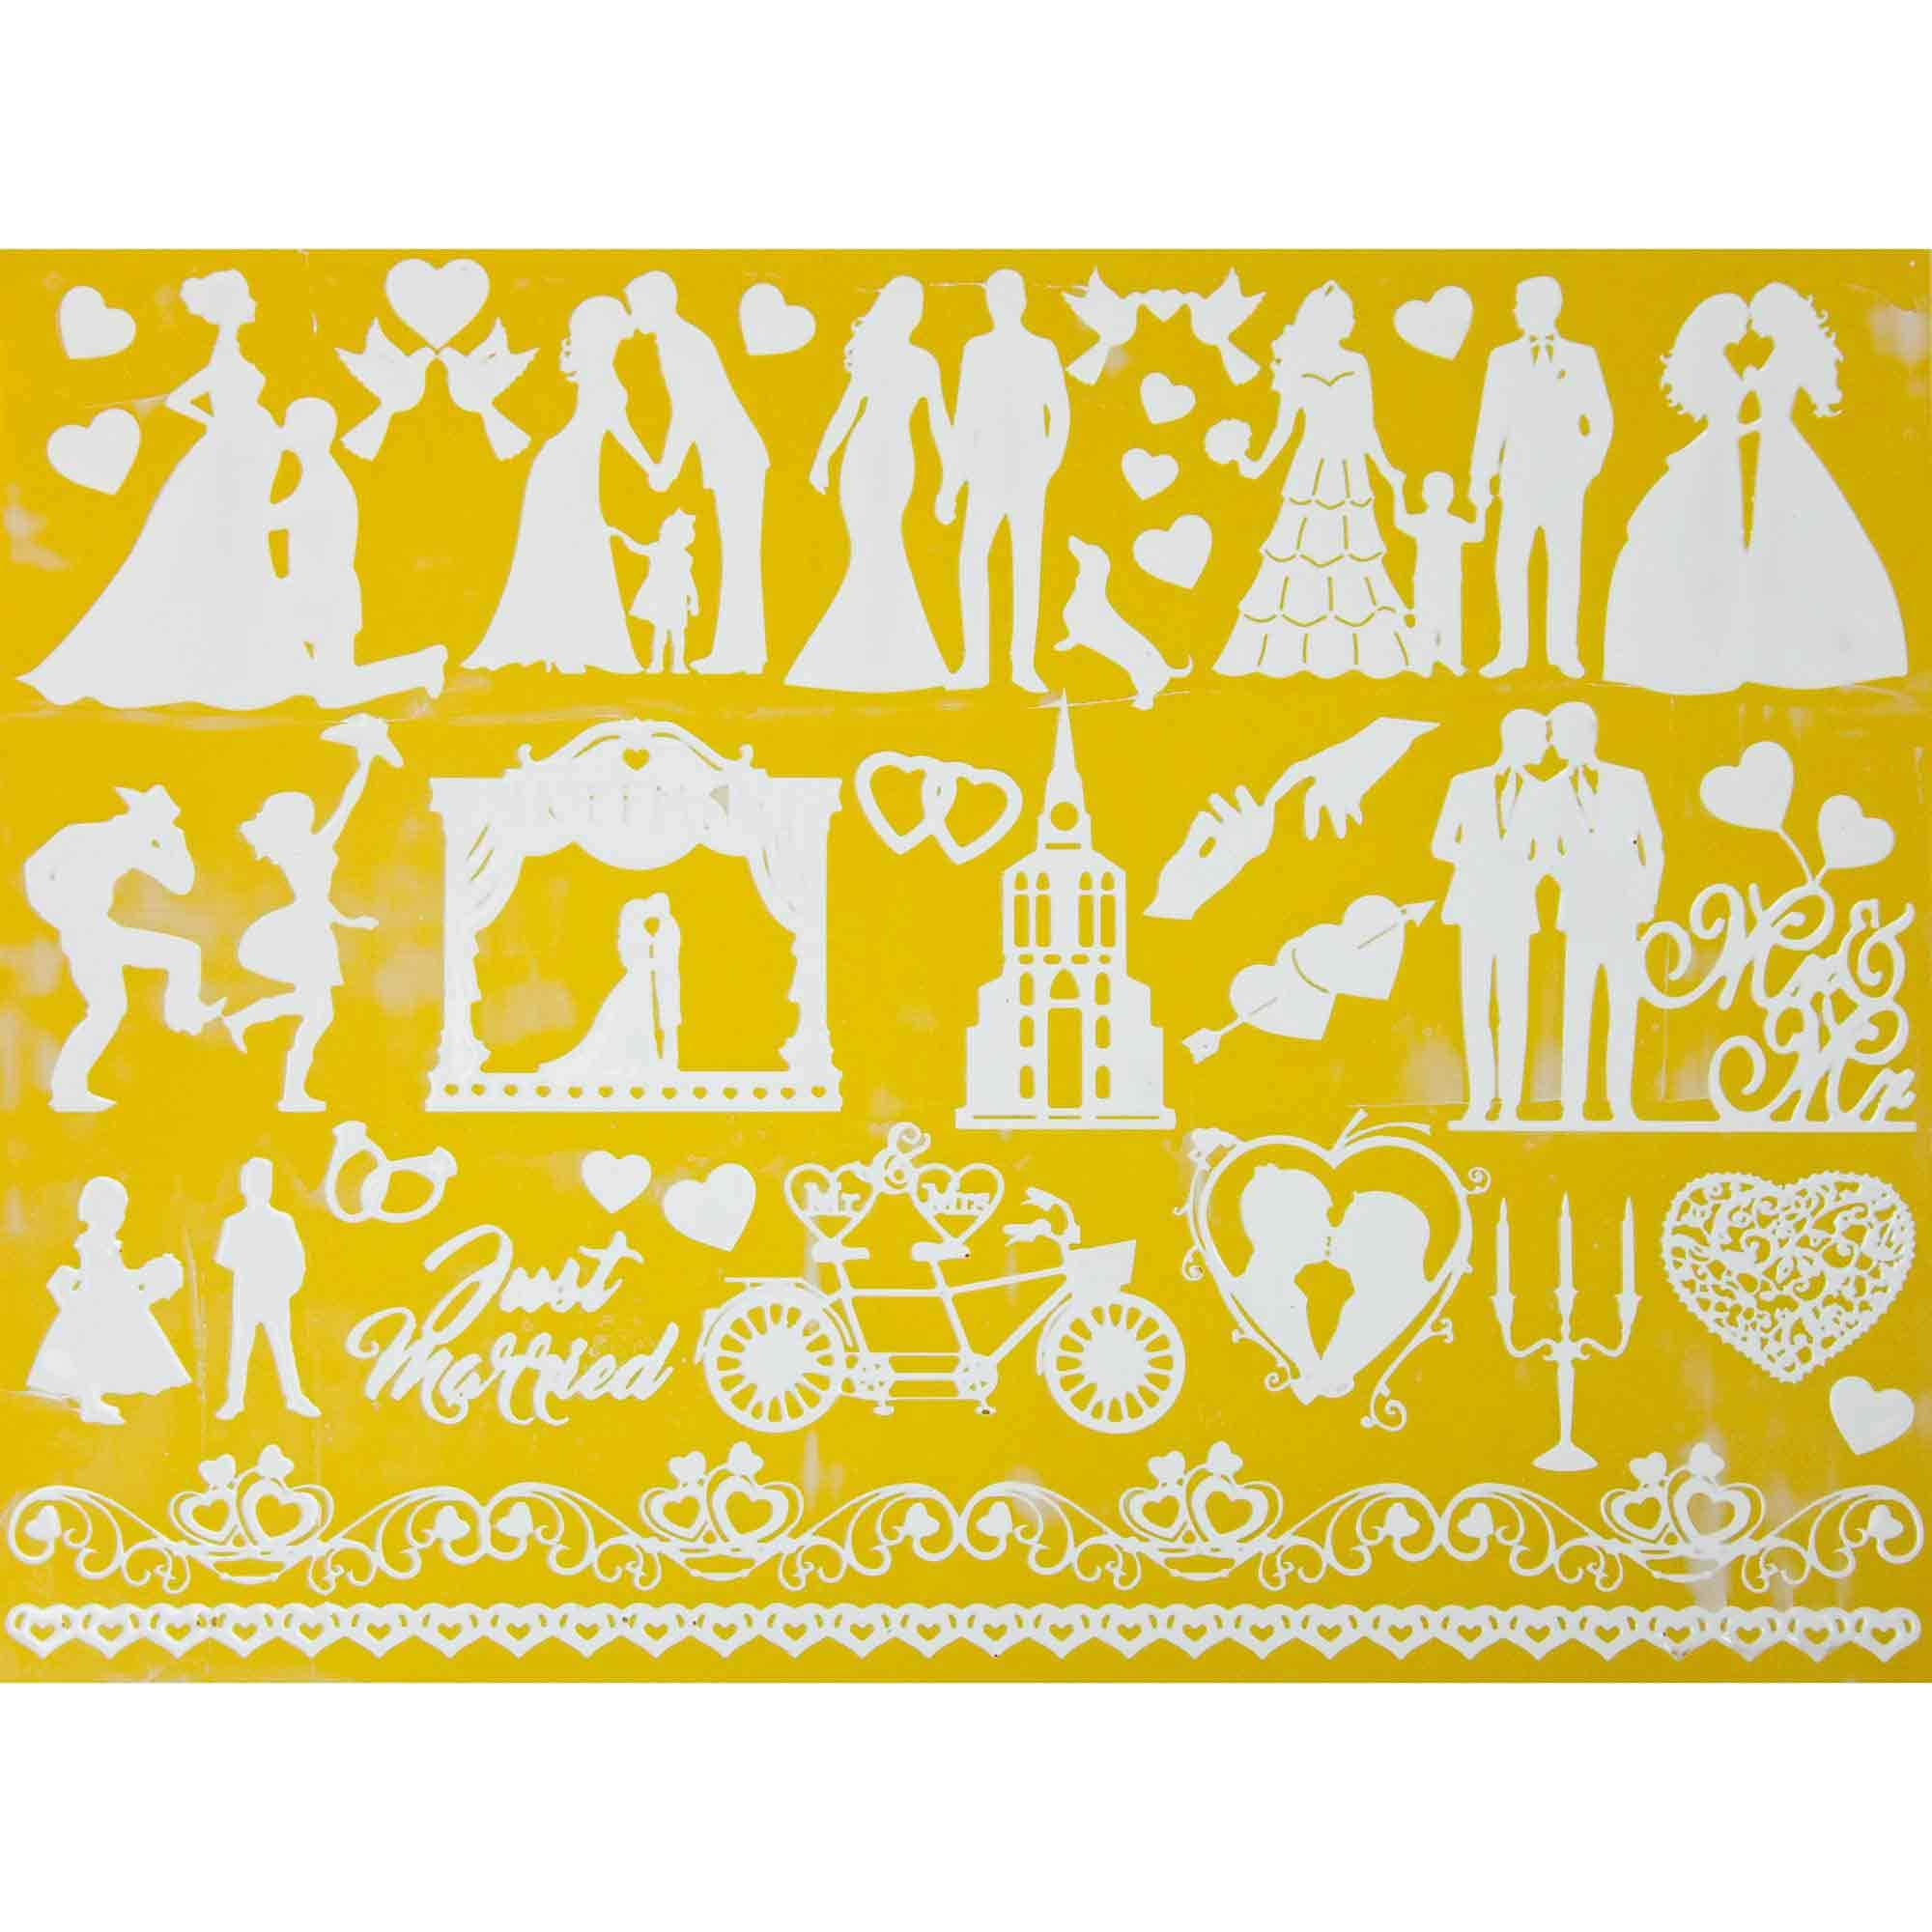 Love And Marriage Silhouette Silicone Lace Mat by Chef Alan Tetreault